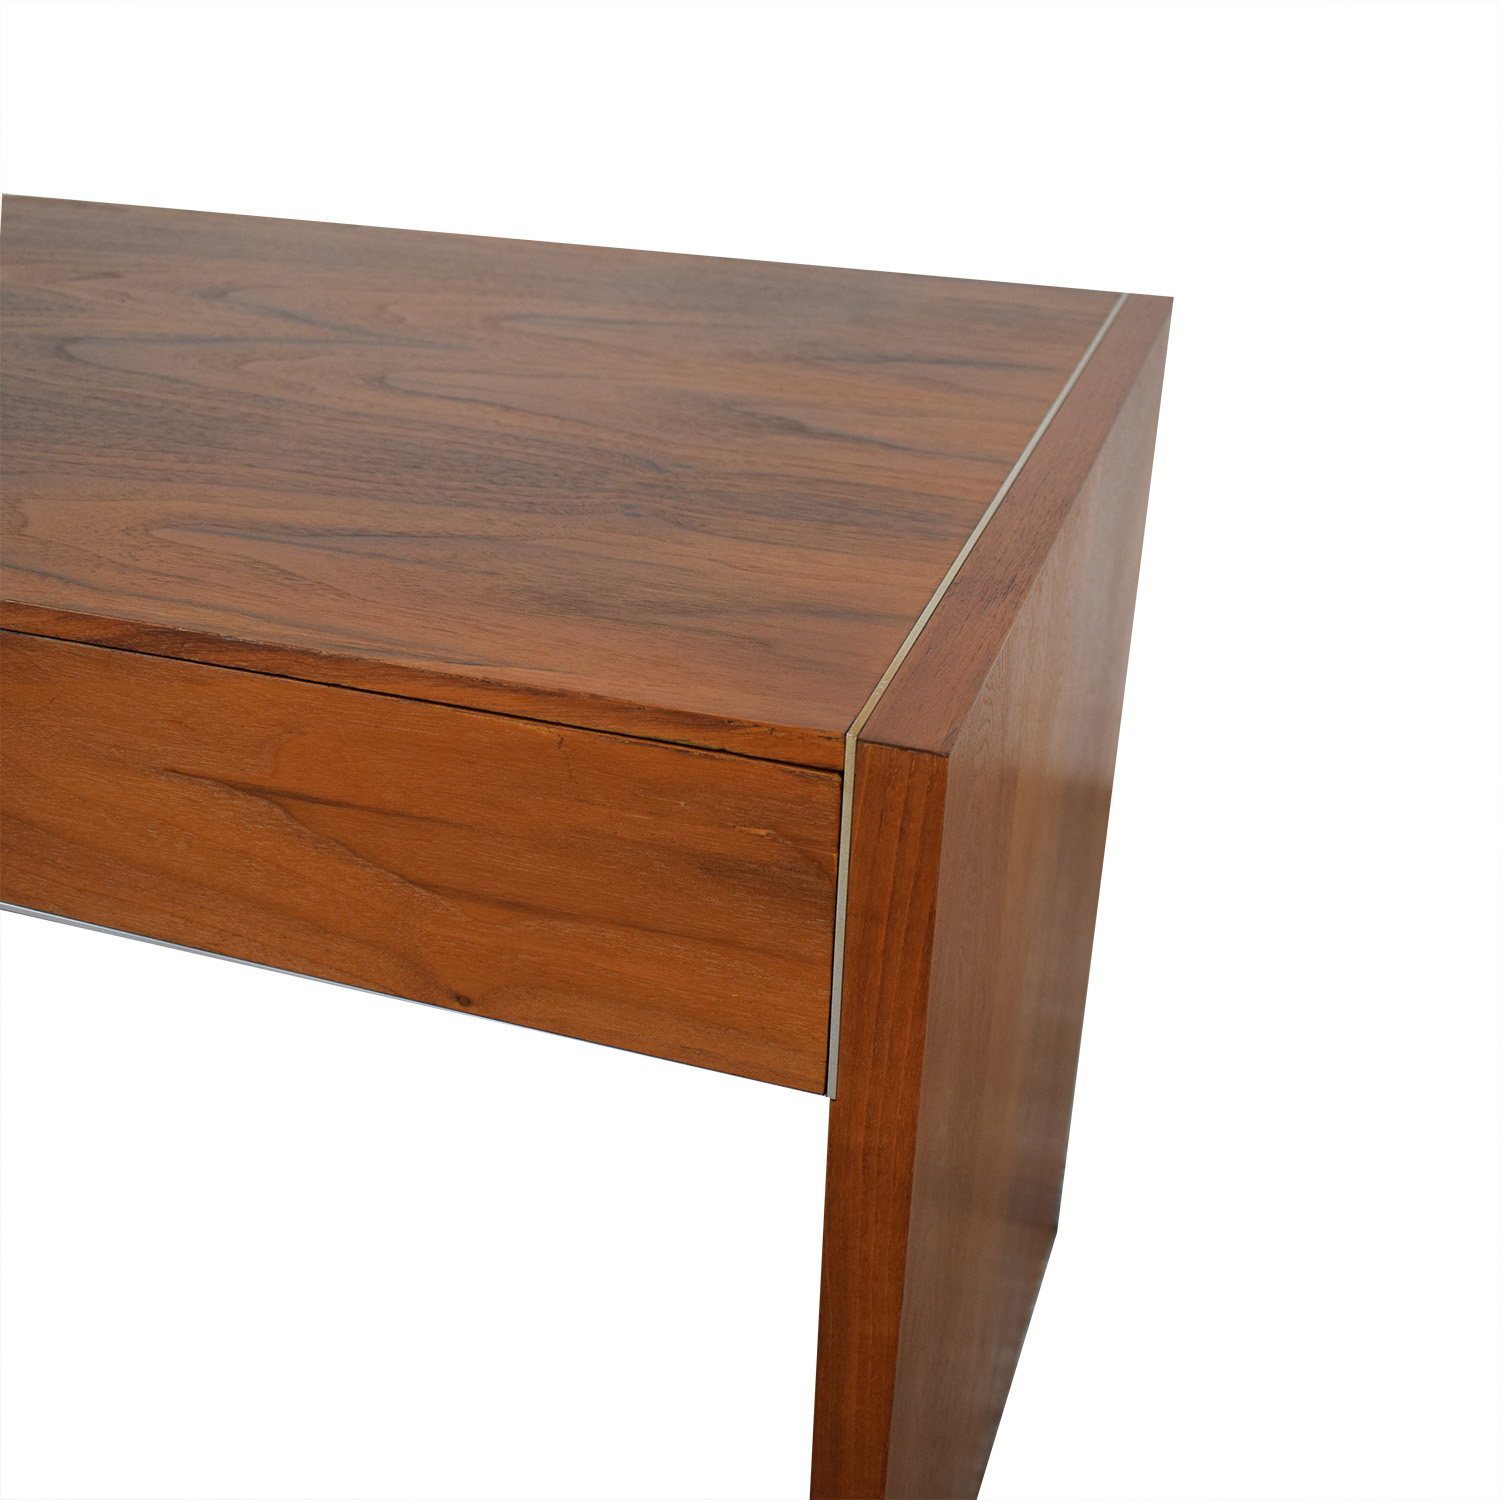 Glenn of California Glenn of California Baron Walnut Desk used